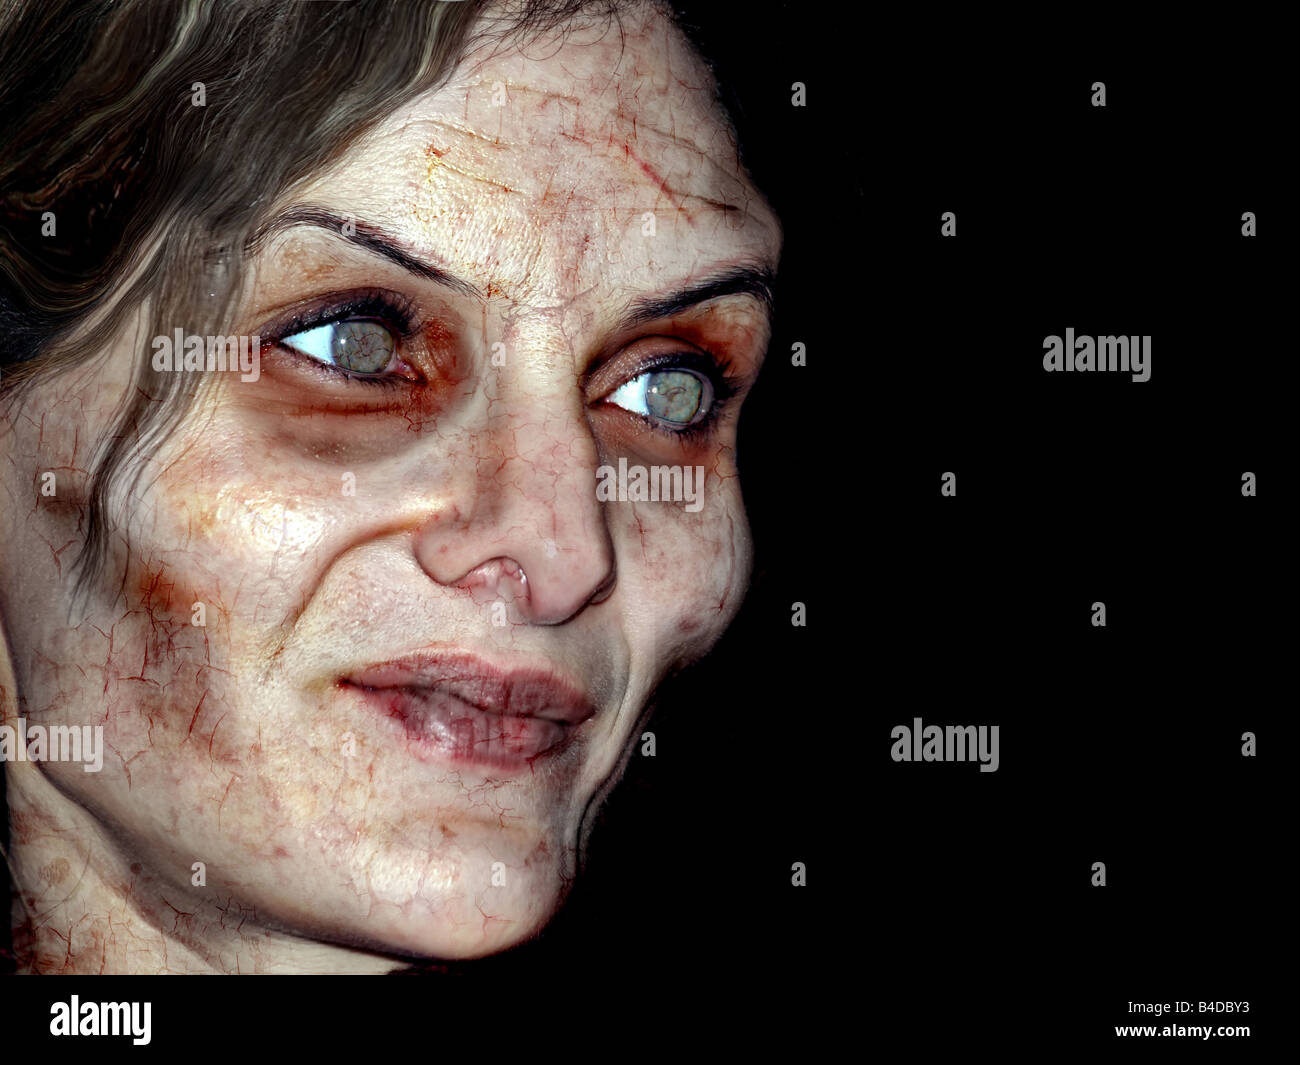 Portrait photo of a scary undead or zombie female human - Stock Image